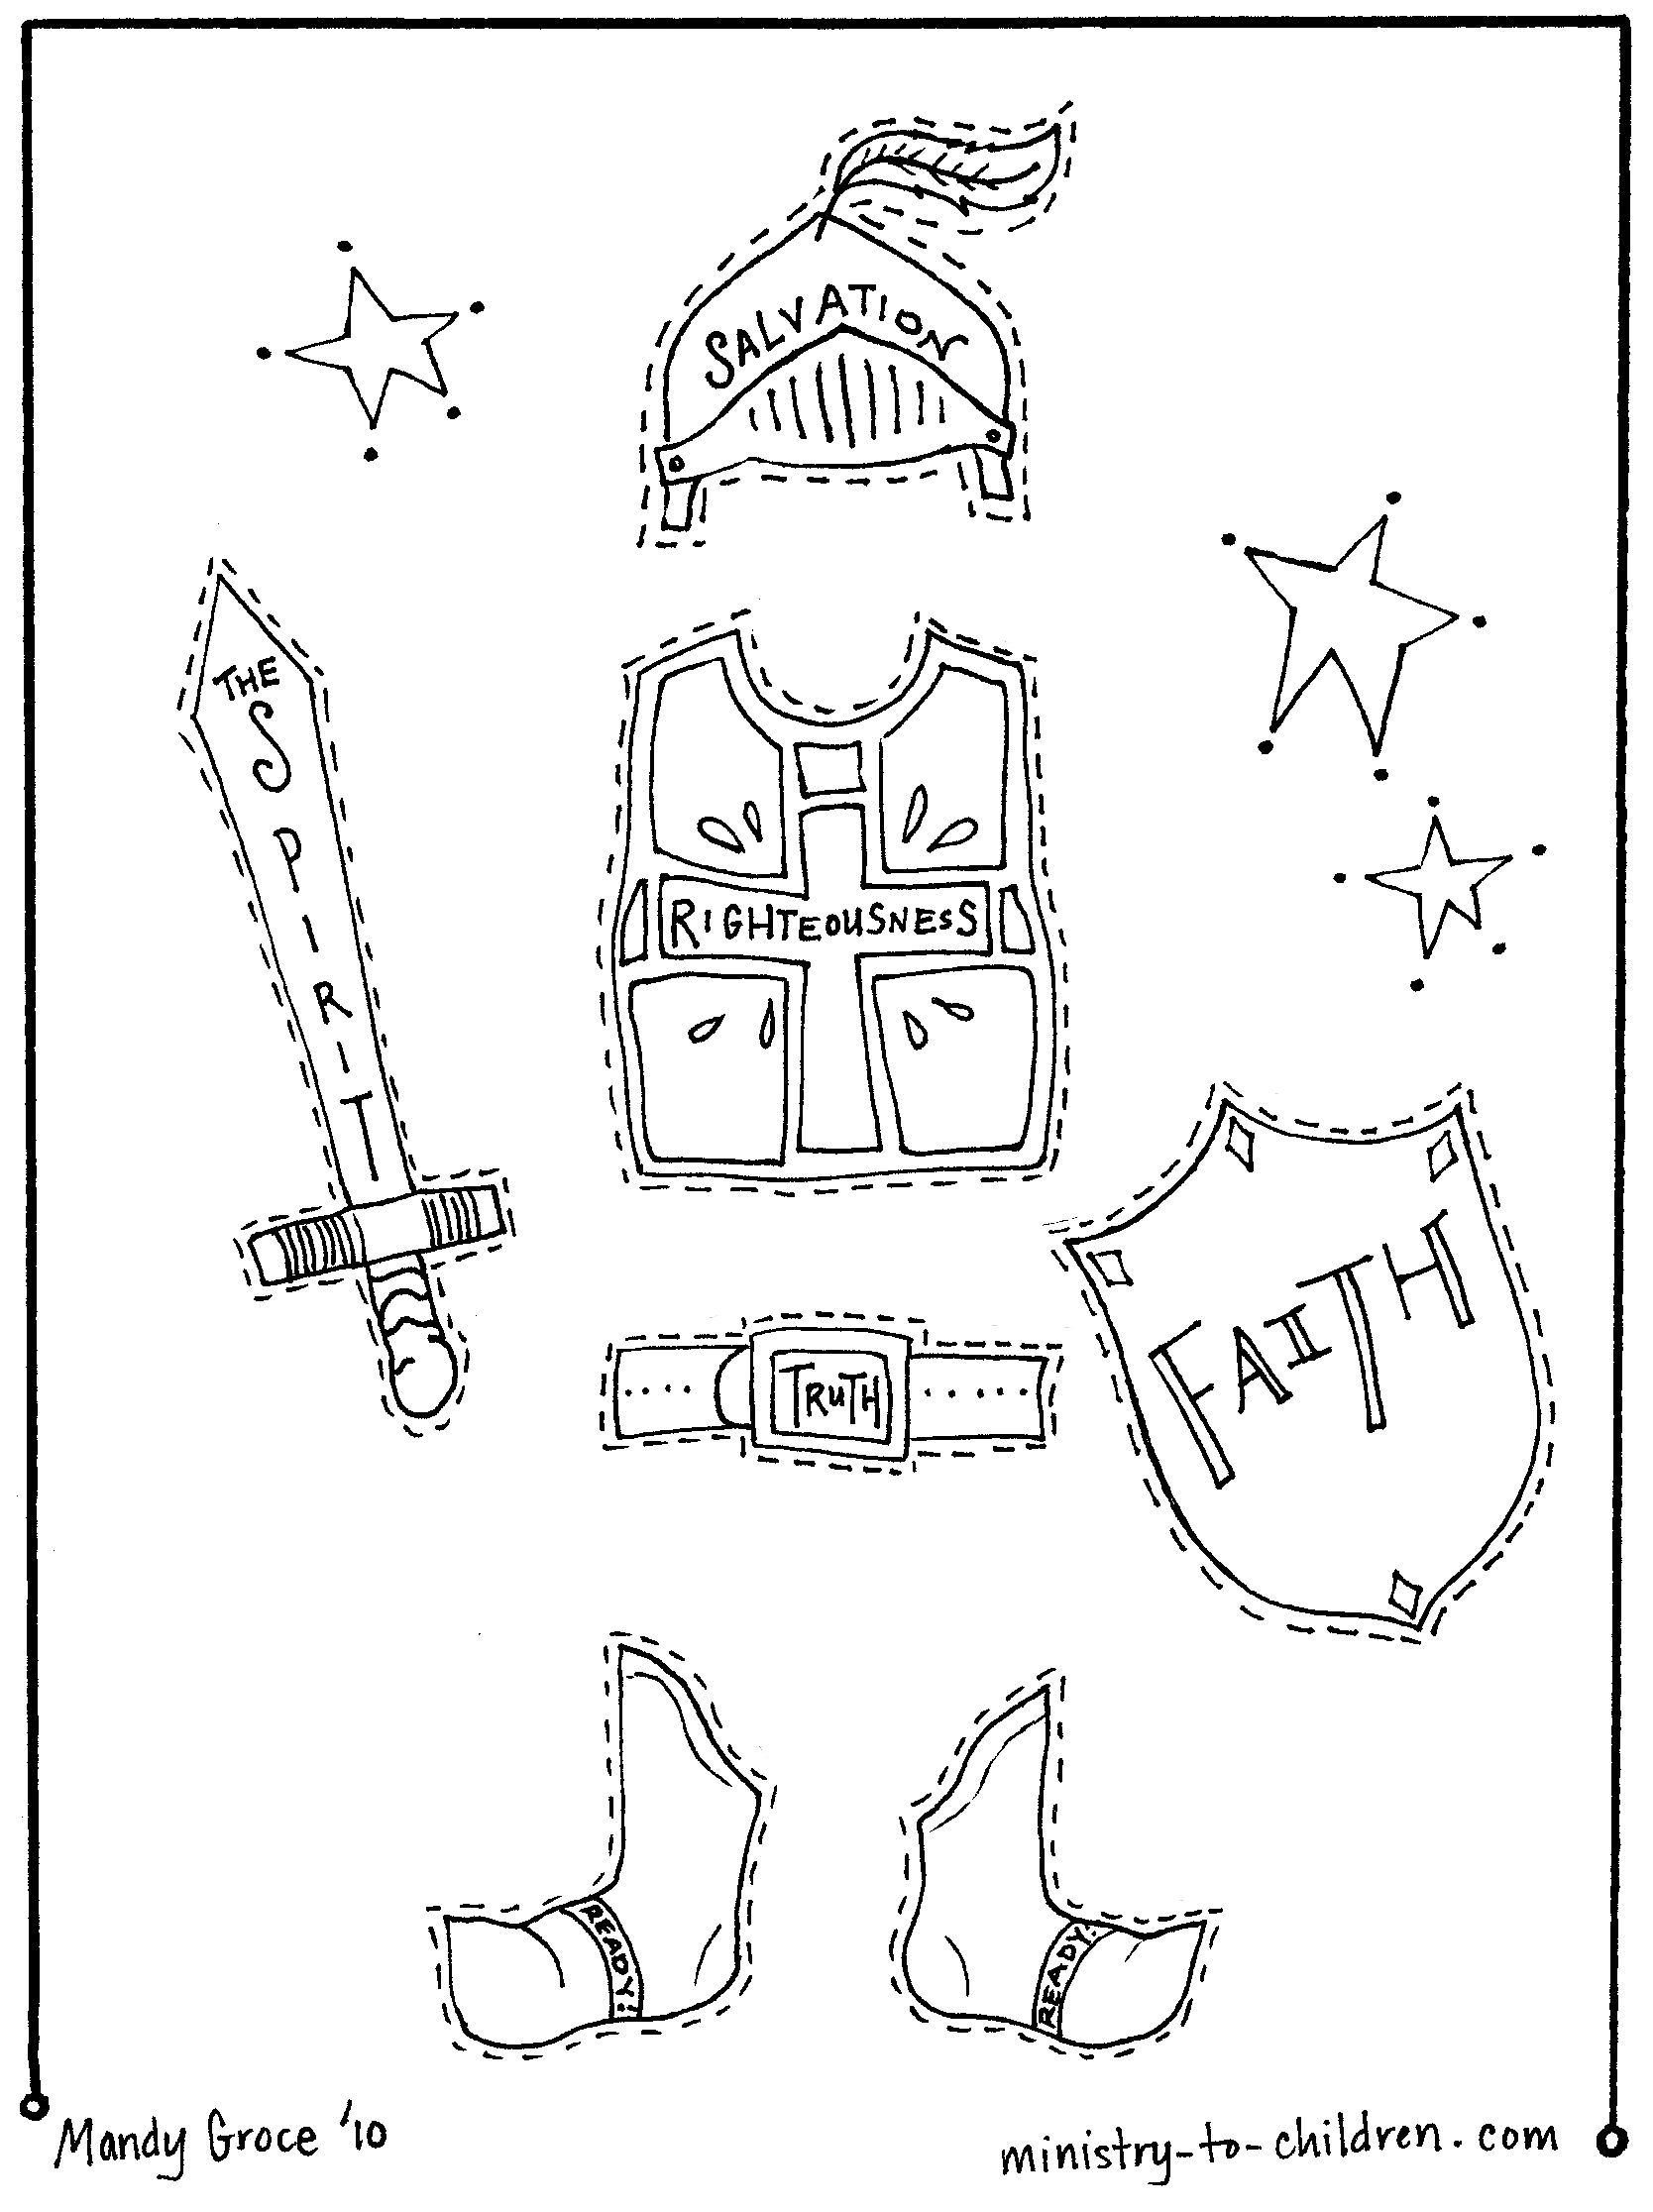 Coloring pages for preschoolers on salavation - Coloring Pages Armor Of God Coloring Pages Armor Of God Coloring Pages Armor Of God Coloring Pages Lds Heavenly Armor Of God For Kids Coloring Pages Armor